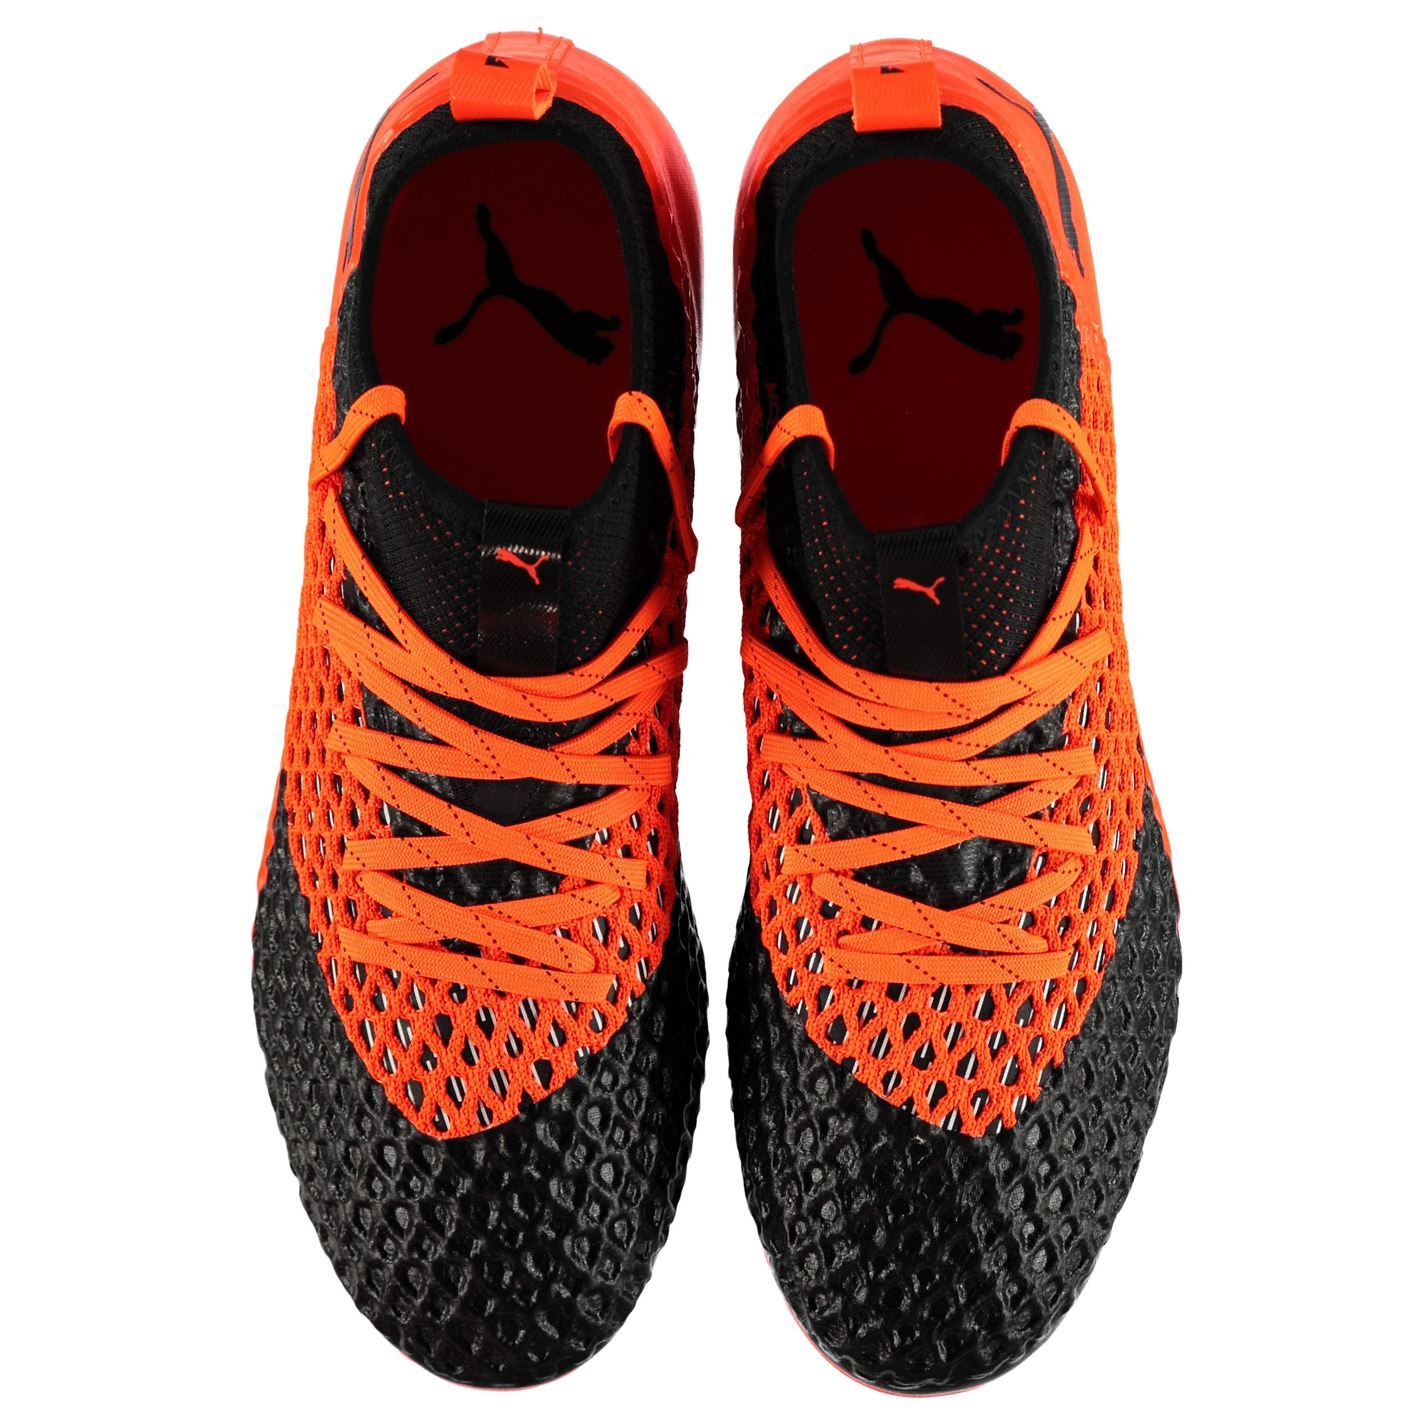 ... Puma Future 2.2 SG Soft Ground Football Boots Mens Orange Soccer Shoes  Cleats bec64c9a32575